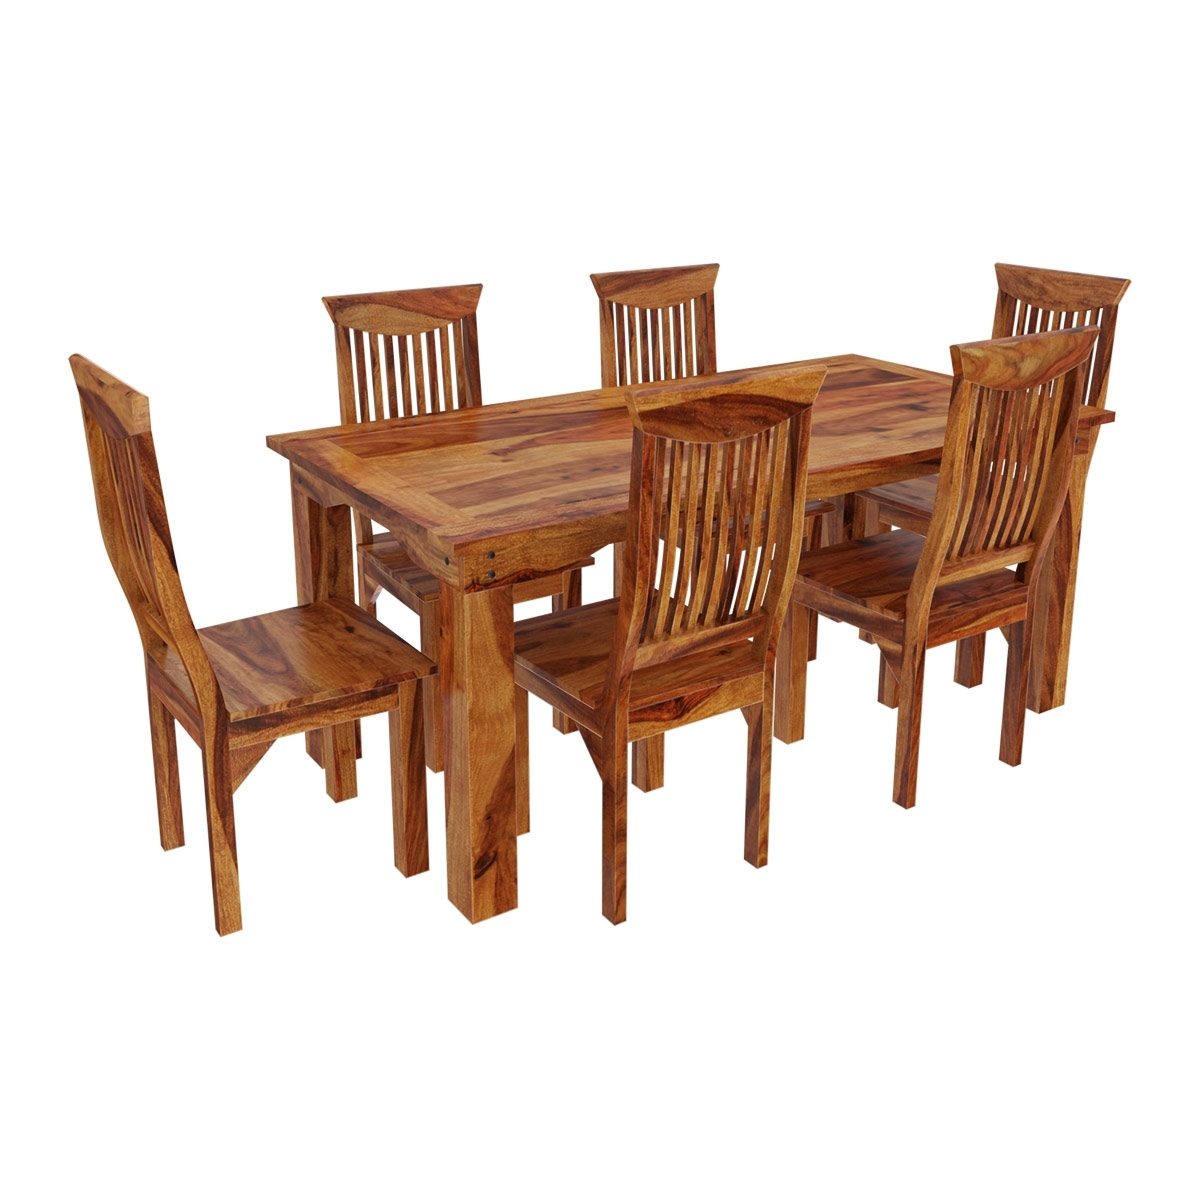 Most Recently Released Solid Wood Dining Tables Pertaining To Idaho Modern Rustic Solid Wood Dining Table & Chair Set (View 14 of 25)